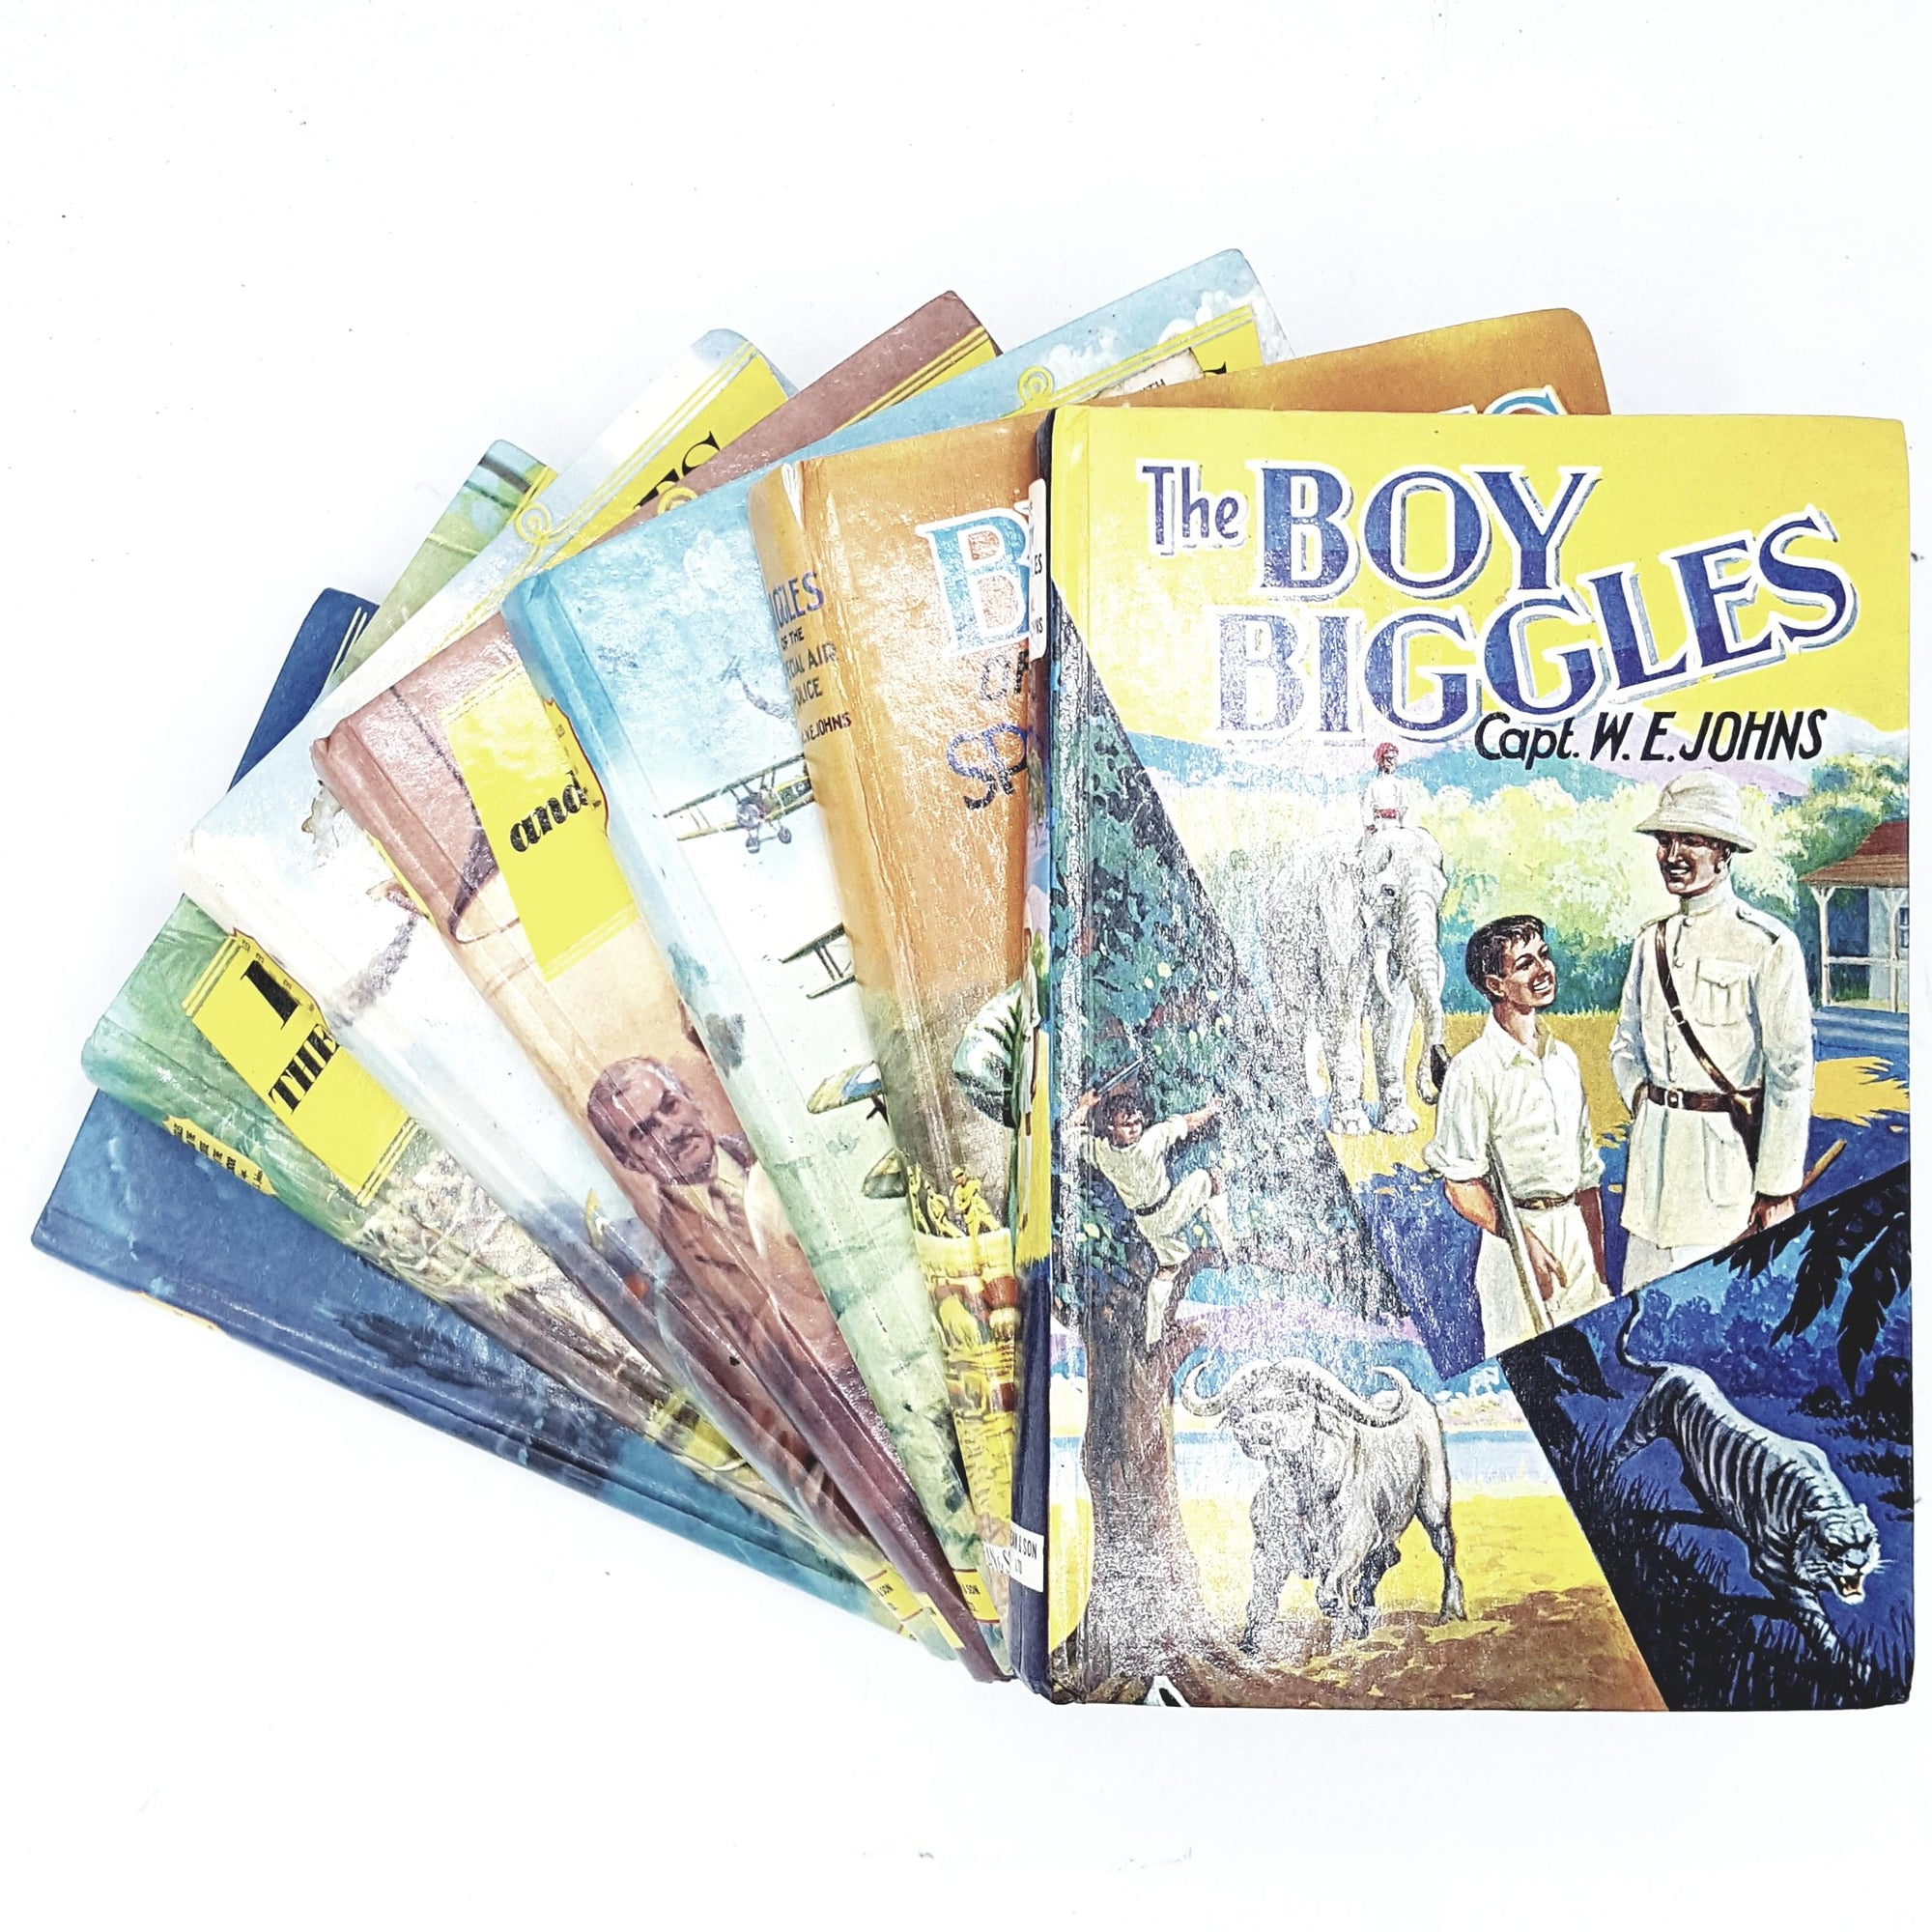 biggles-collection-captain-johns-rainbow-country-house-library